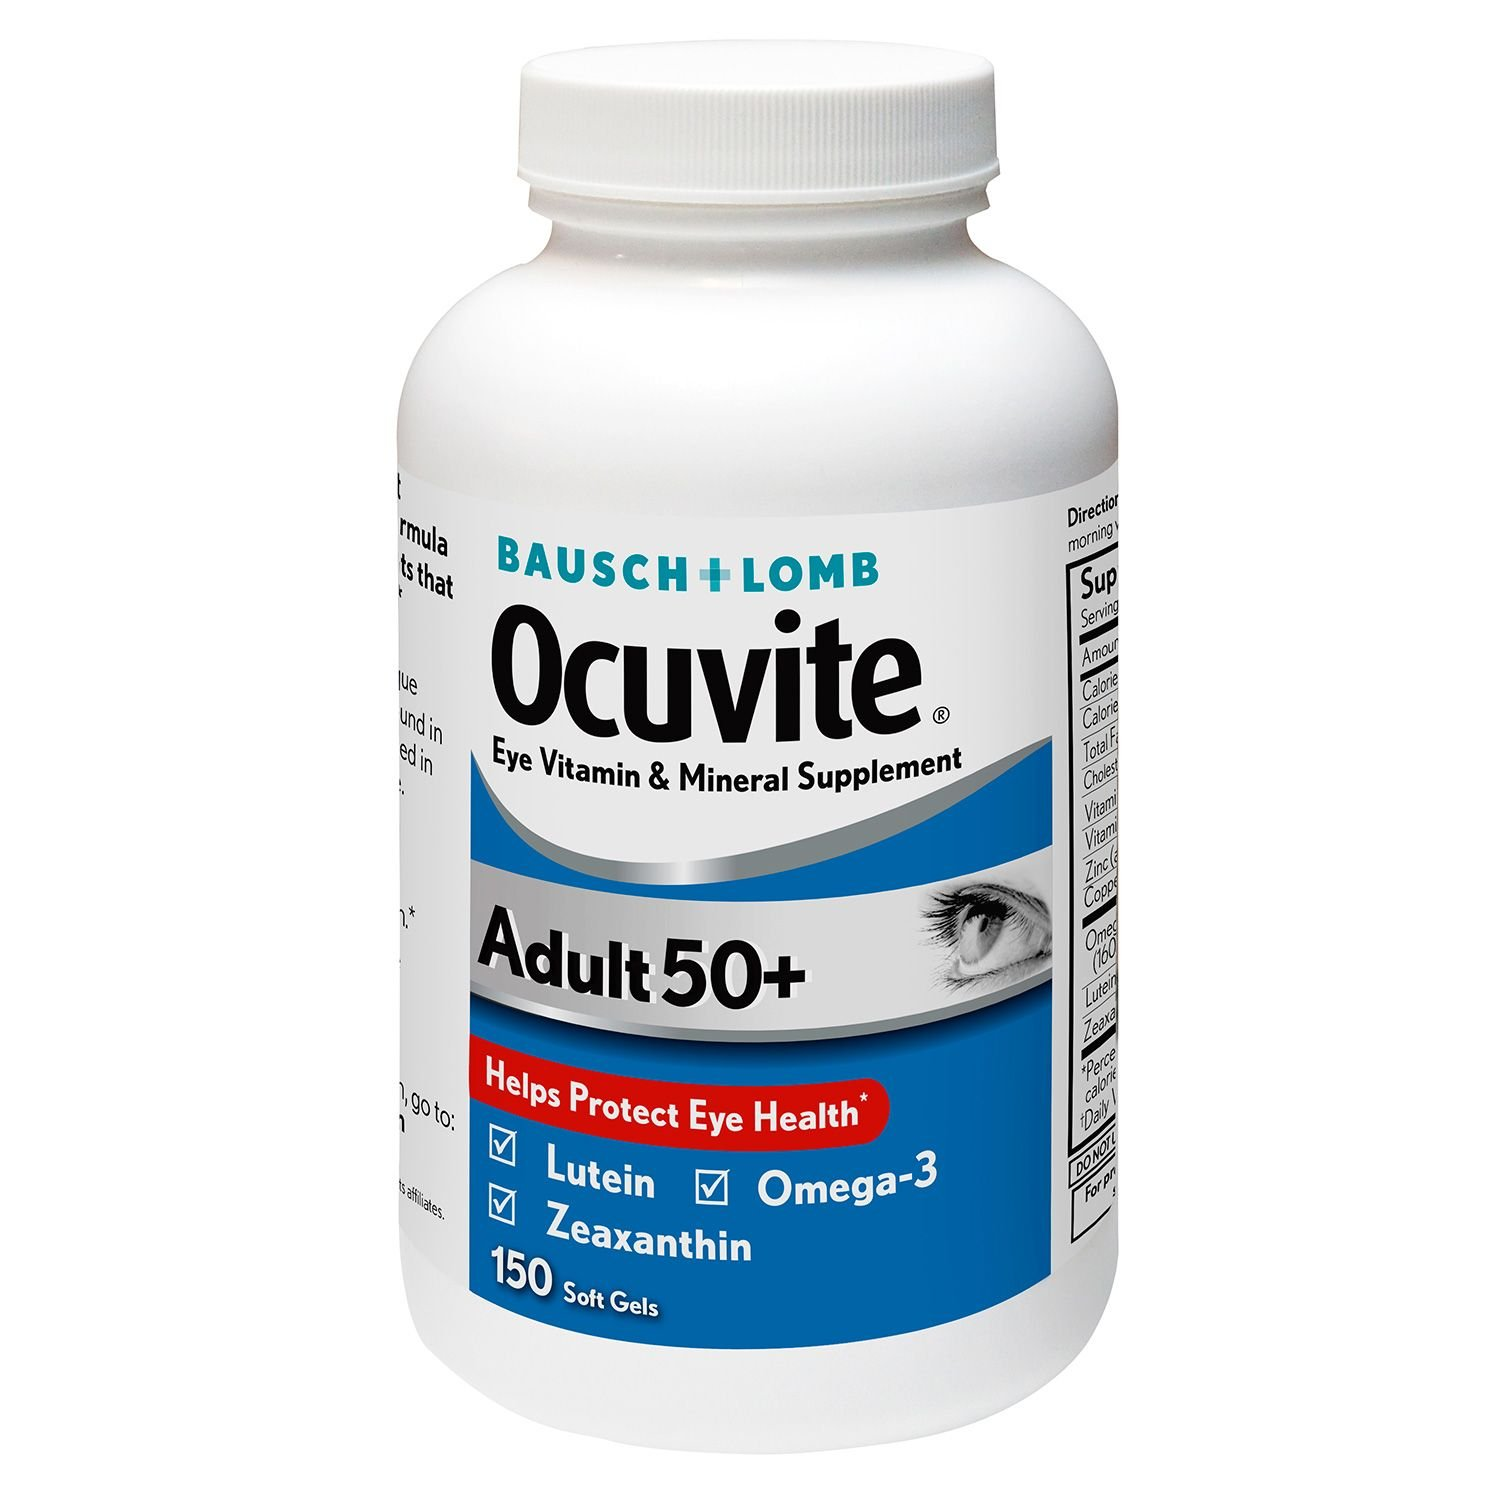 Bausch + Lomb Ocuvite Supplement, Adult 50+ (150 ct.) Pack of 2 avc%oqh